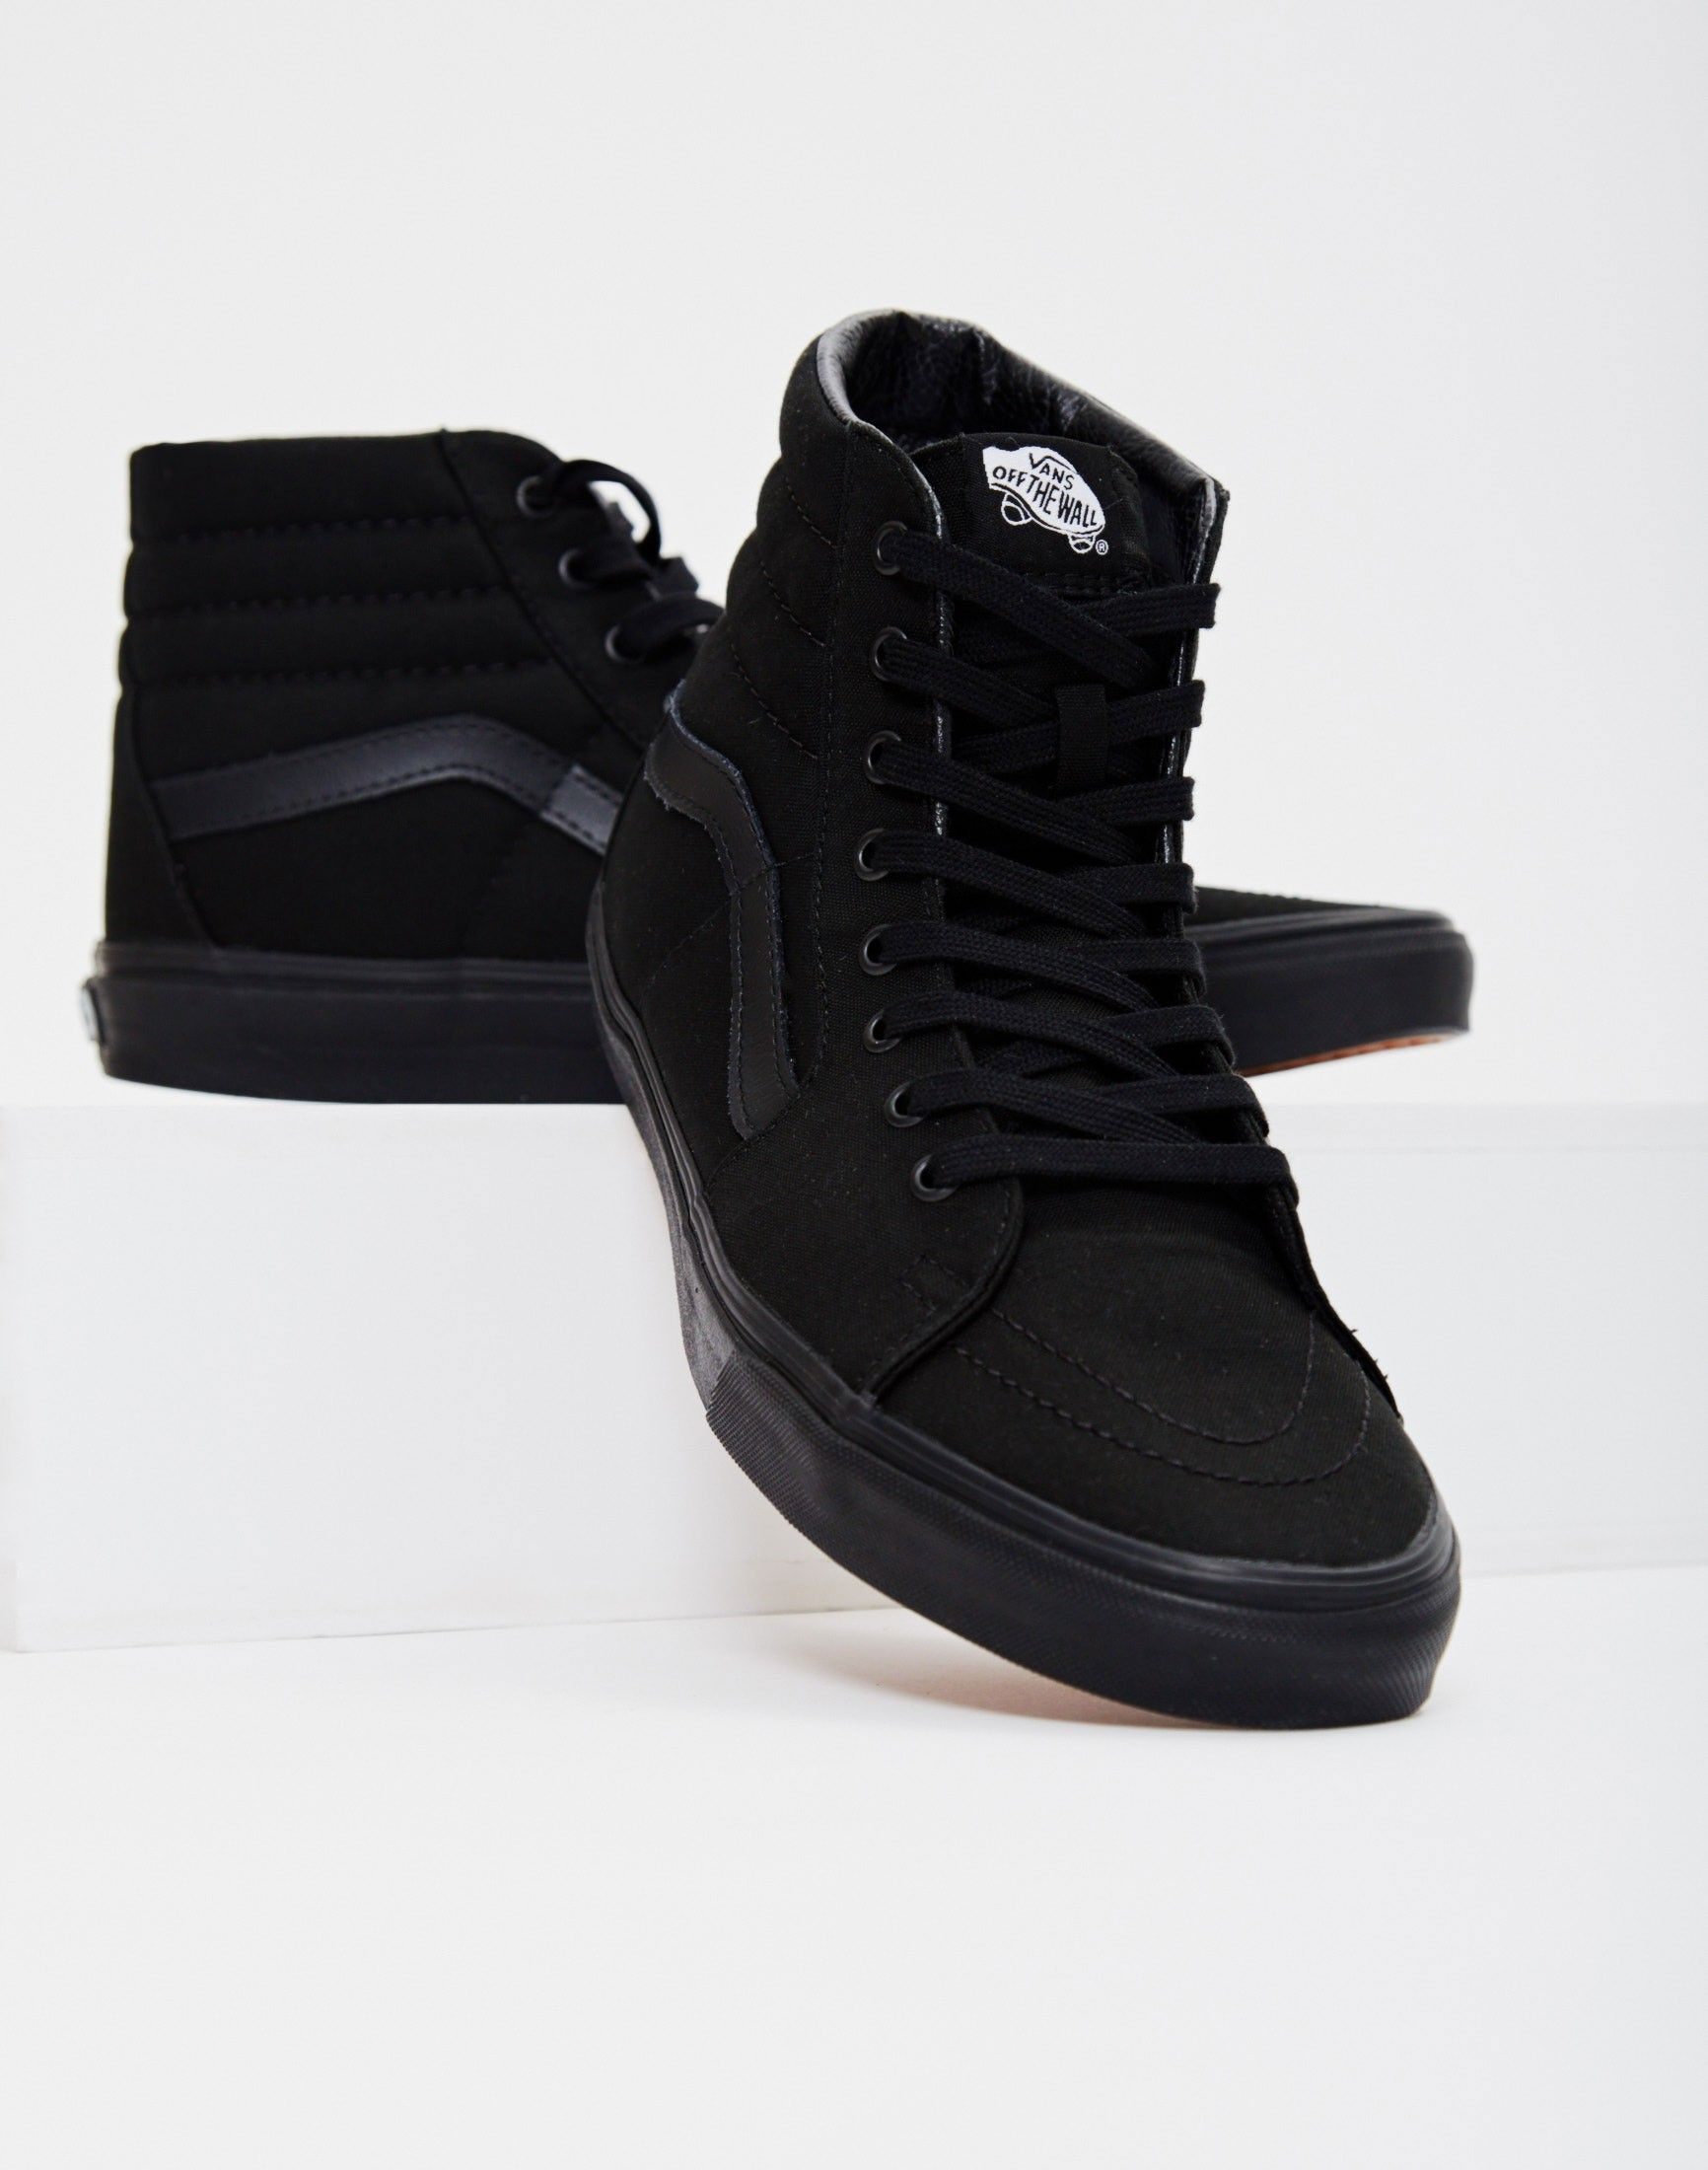 9c932d3a9b Vans Sk8-Hi Trainers All Black